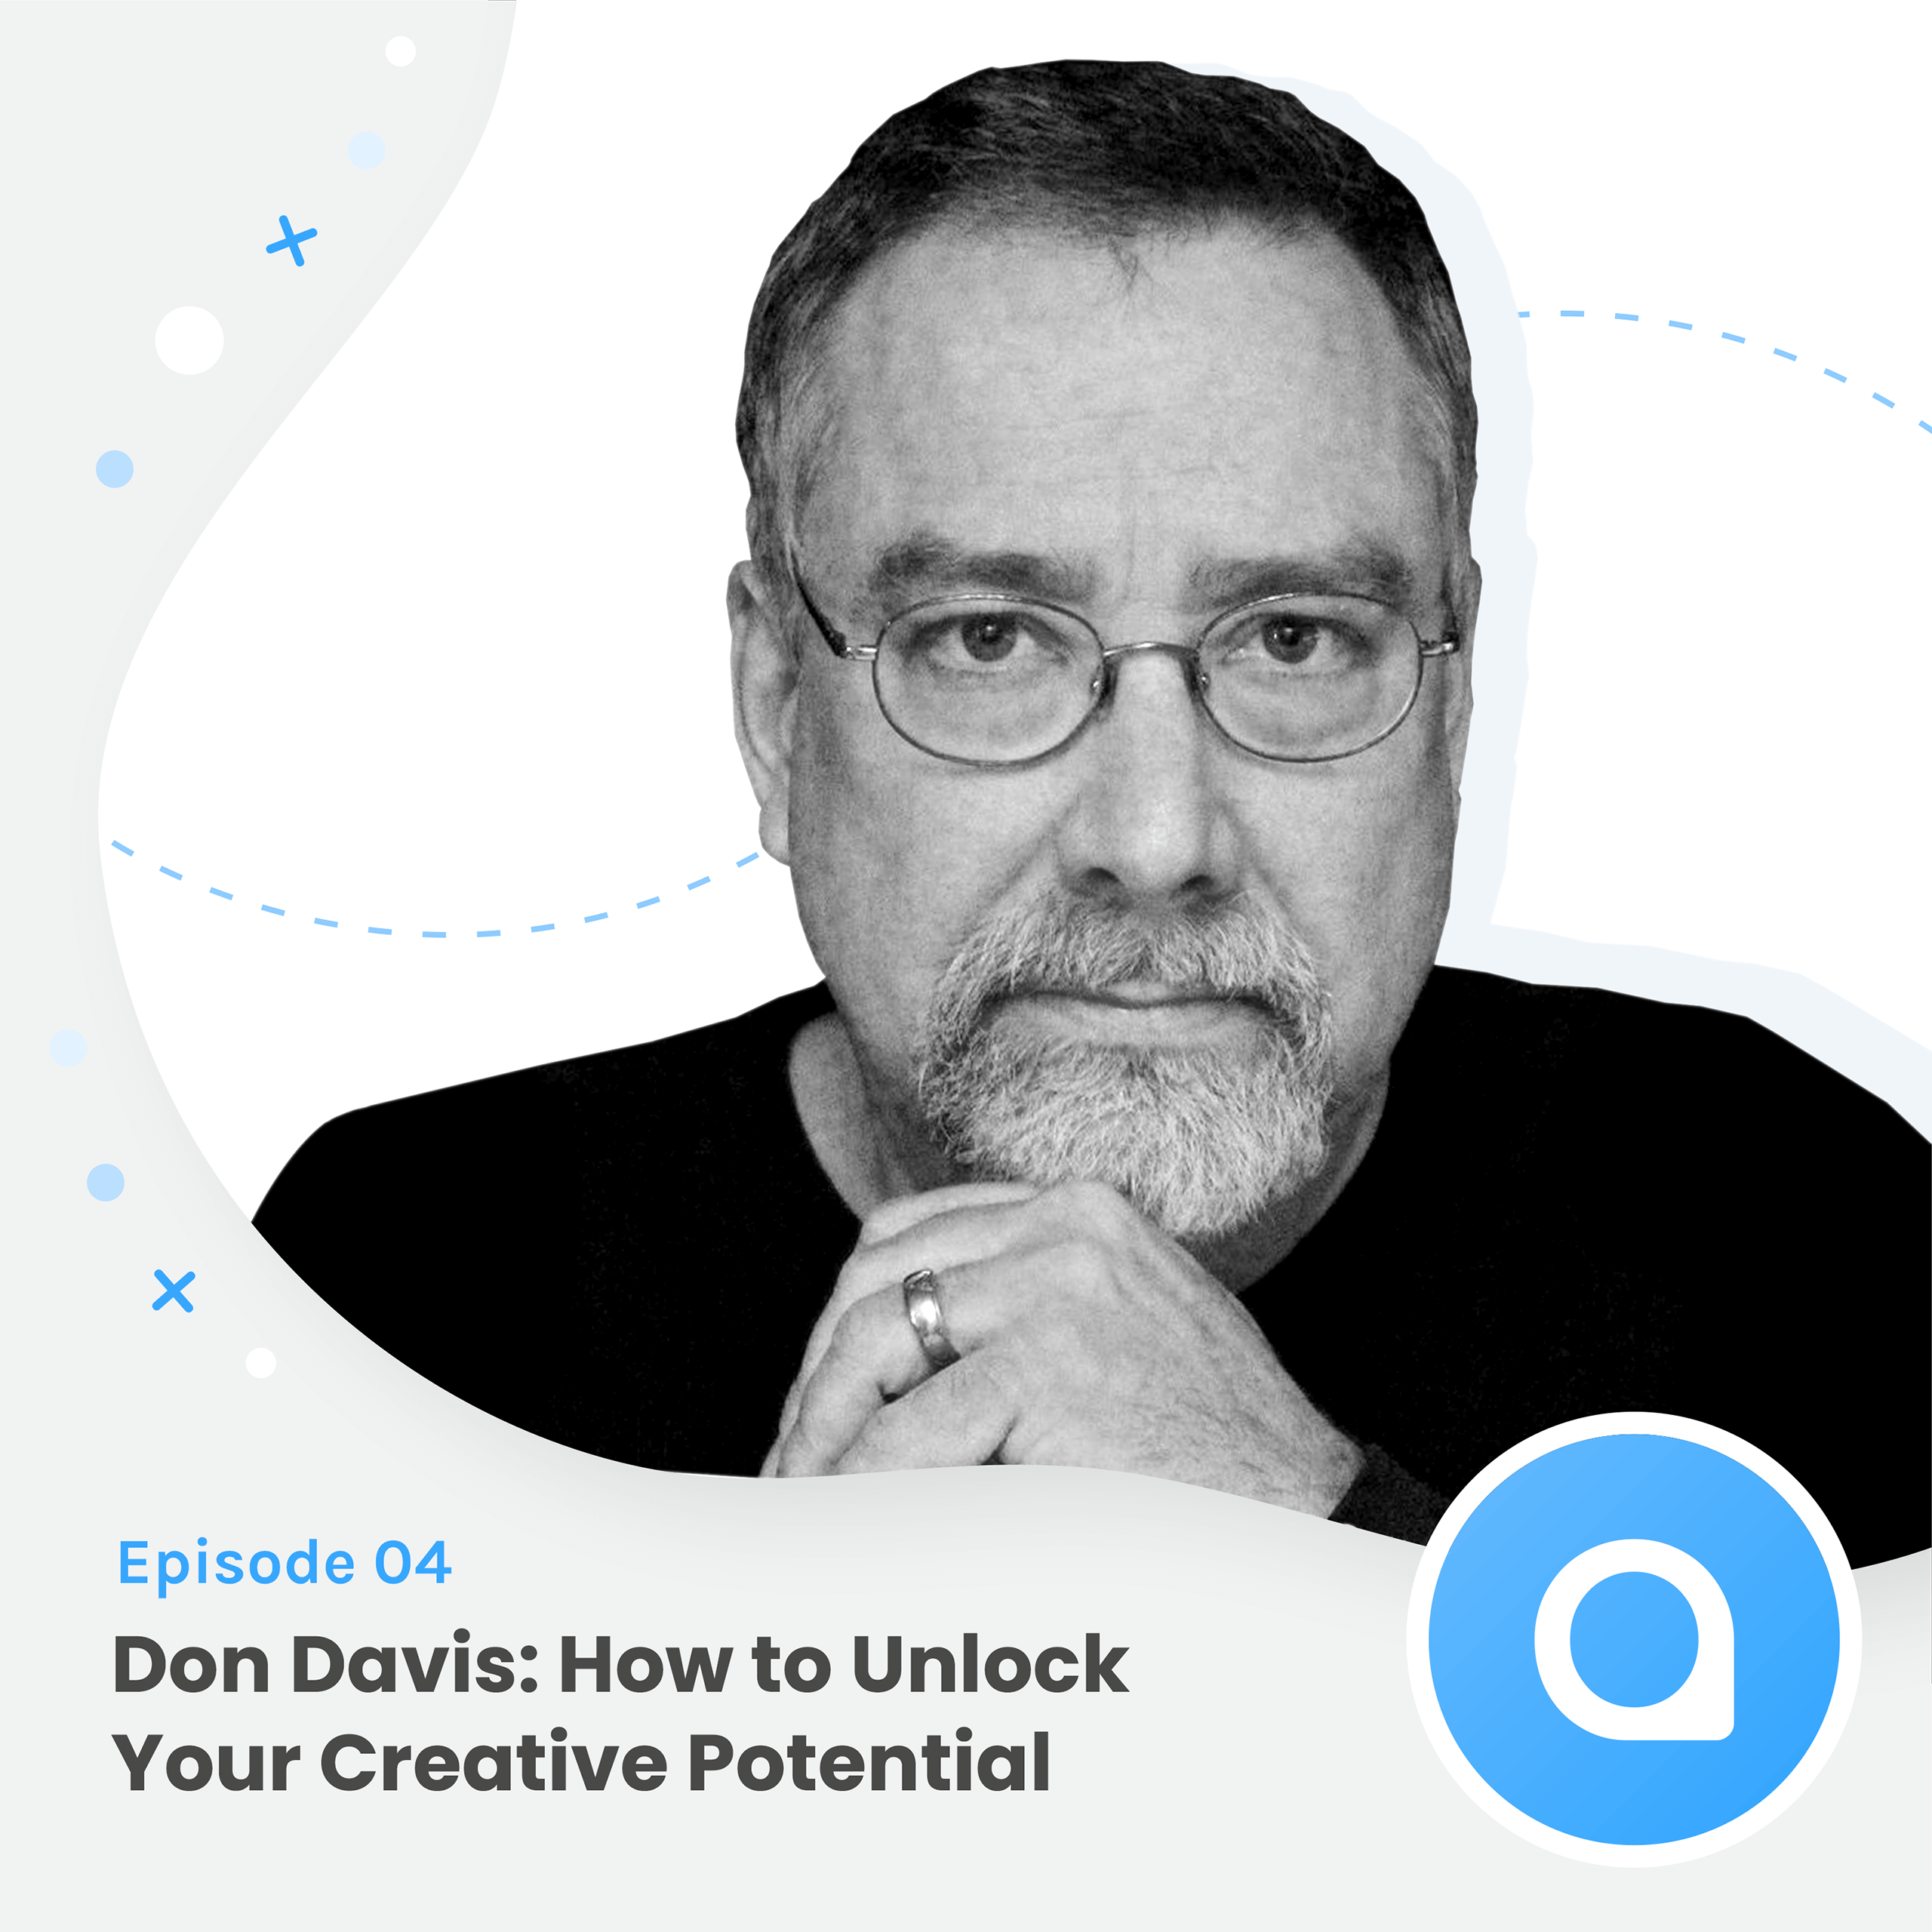 Don Davis: How to Unlock Your Creative Potential